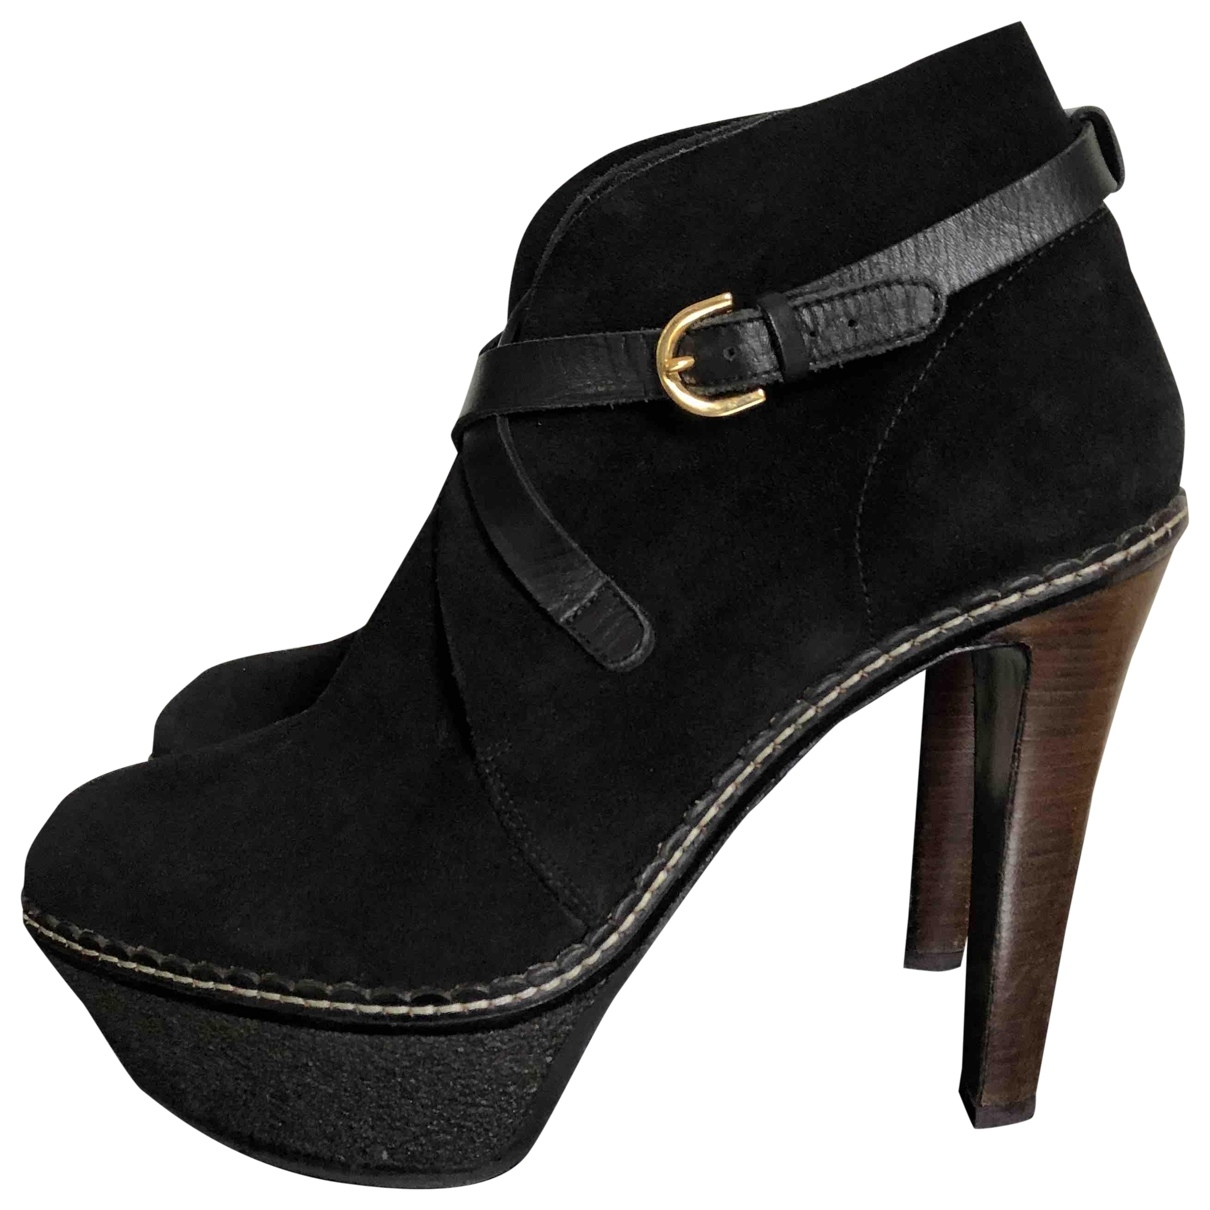 Sergio Rossi \N Black Suede Ankle boots for Women 39 EU